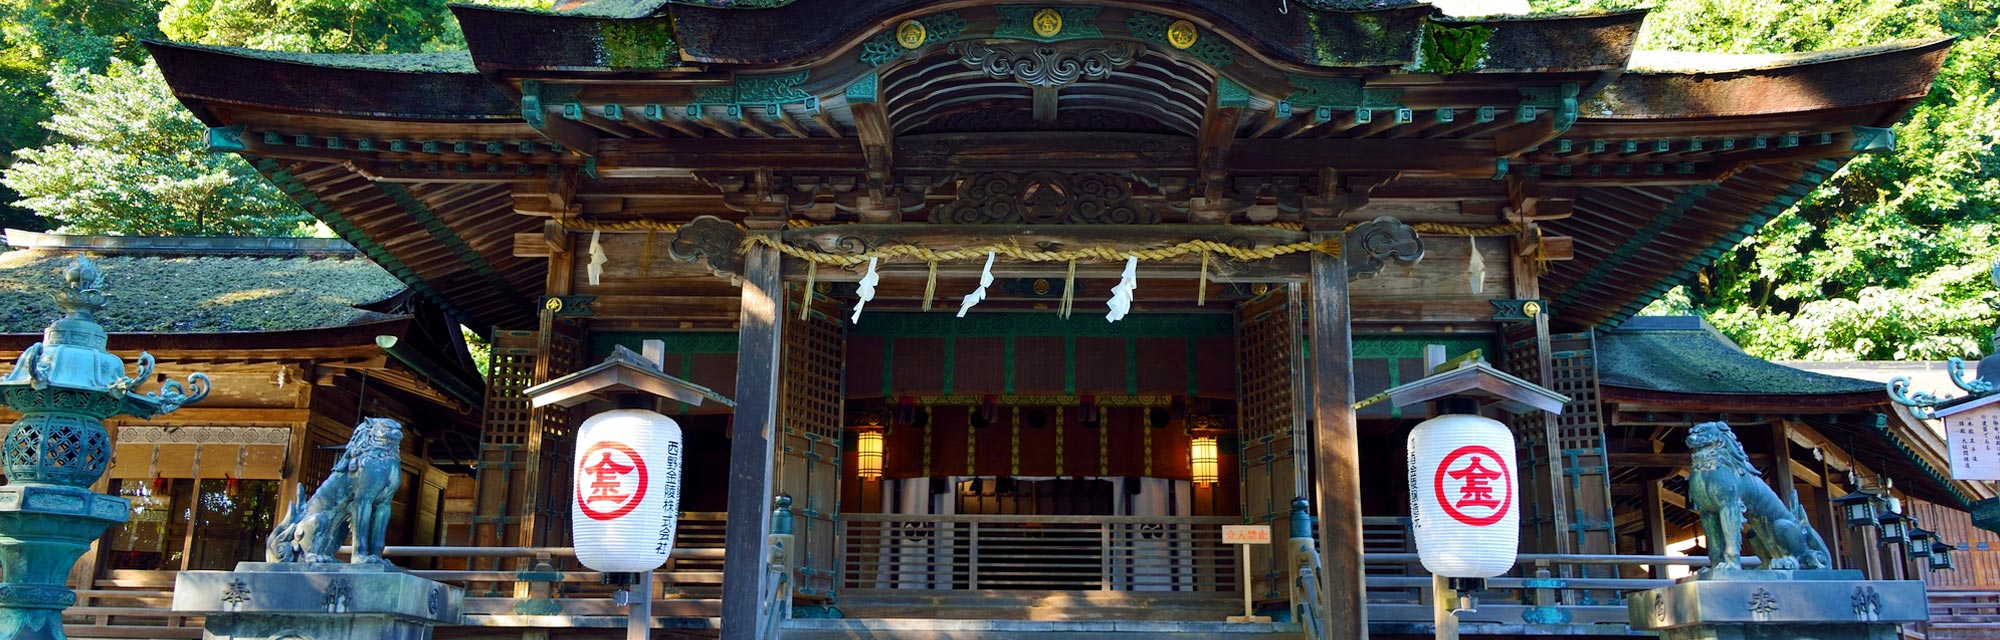 Kotohira-gu Shrine - Japan National Tourism Organization